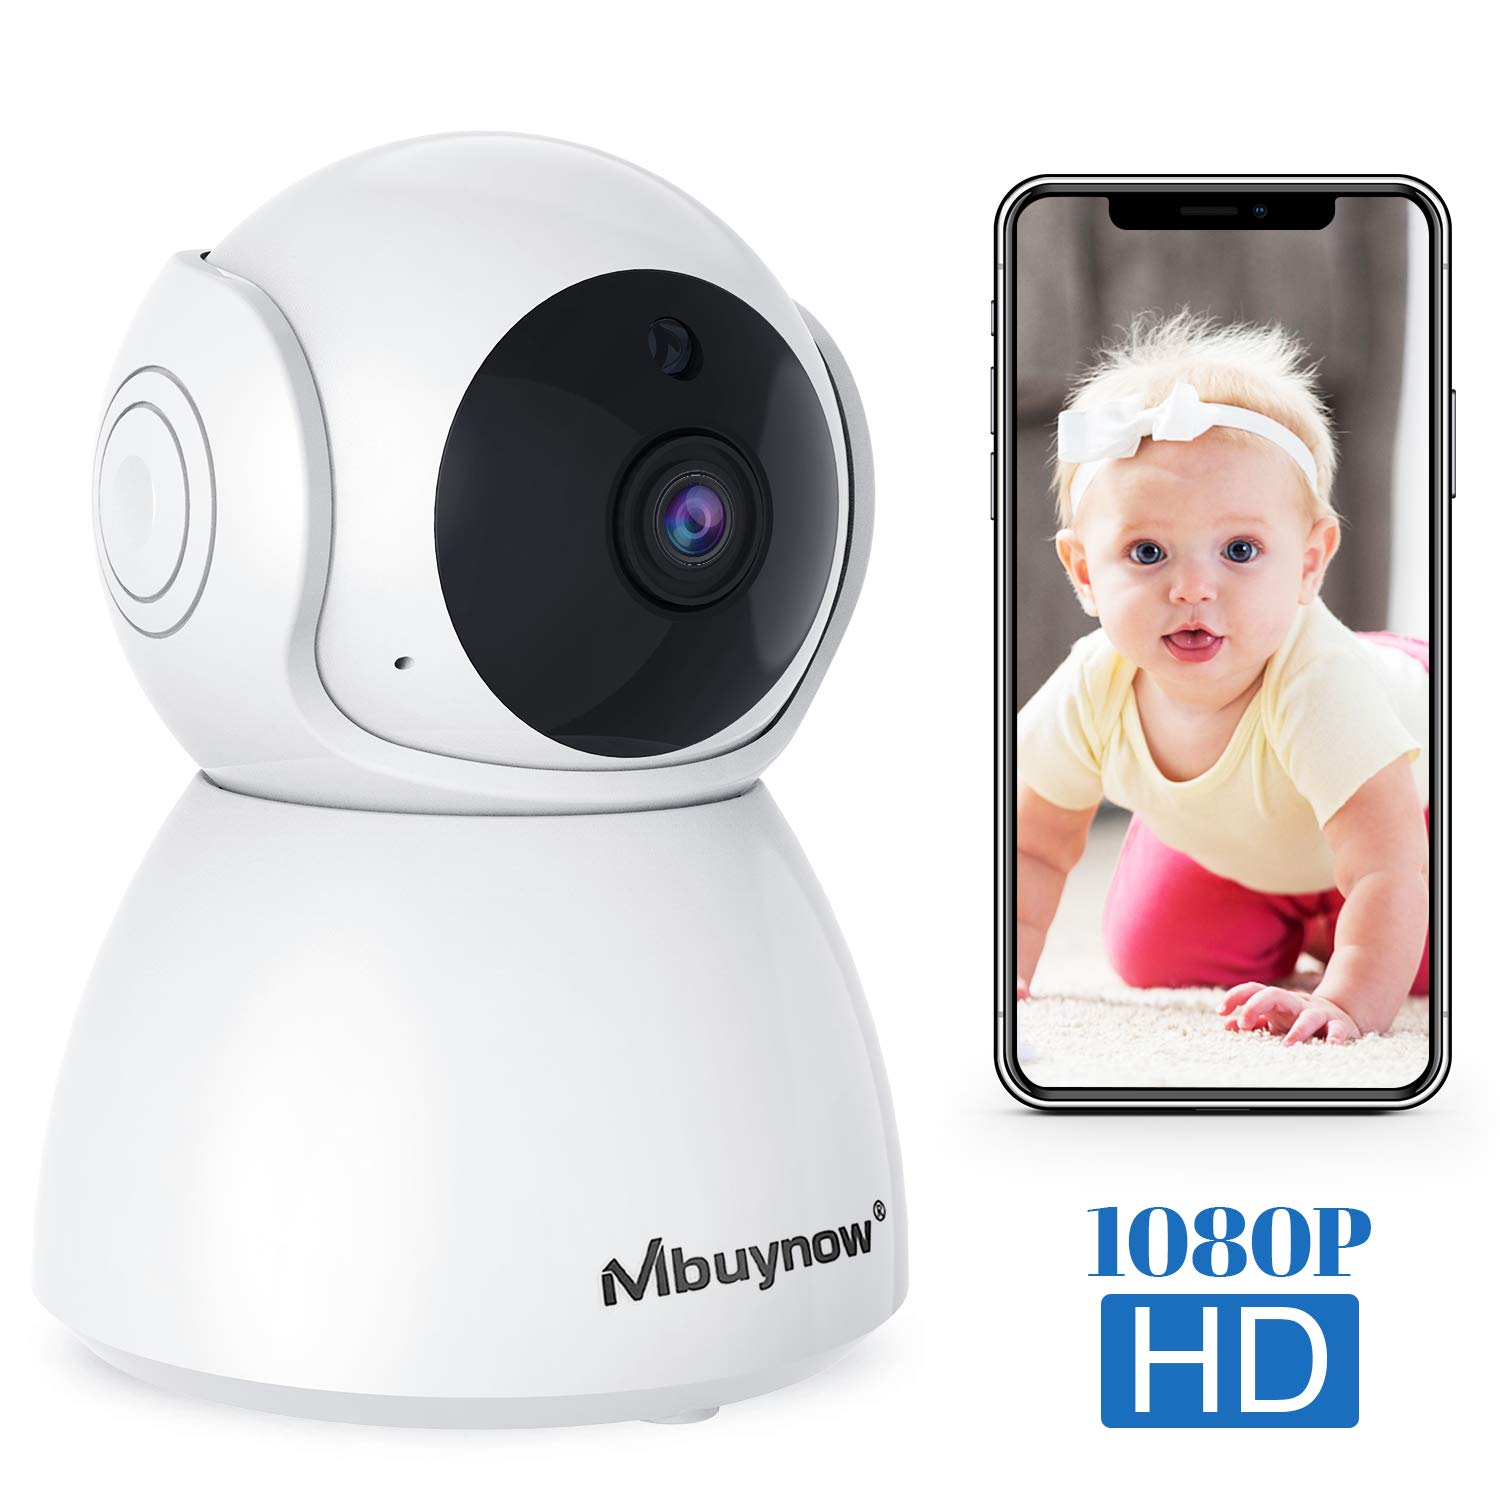 WiFi IP Home Camera, Mbuynow Wireless 1080P Home Indoor Security Surveillance Camera Nanny Cam for Baby Elder Pet Nanny Monitor with PTZ Motion Detection Night Vision 2-Way Audio Cloud-Storage